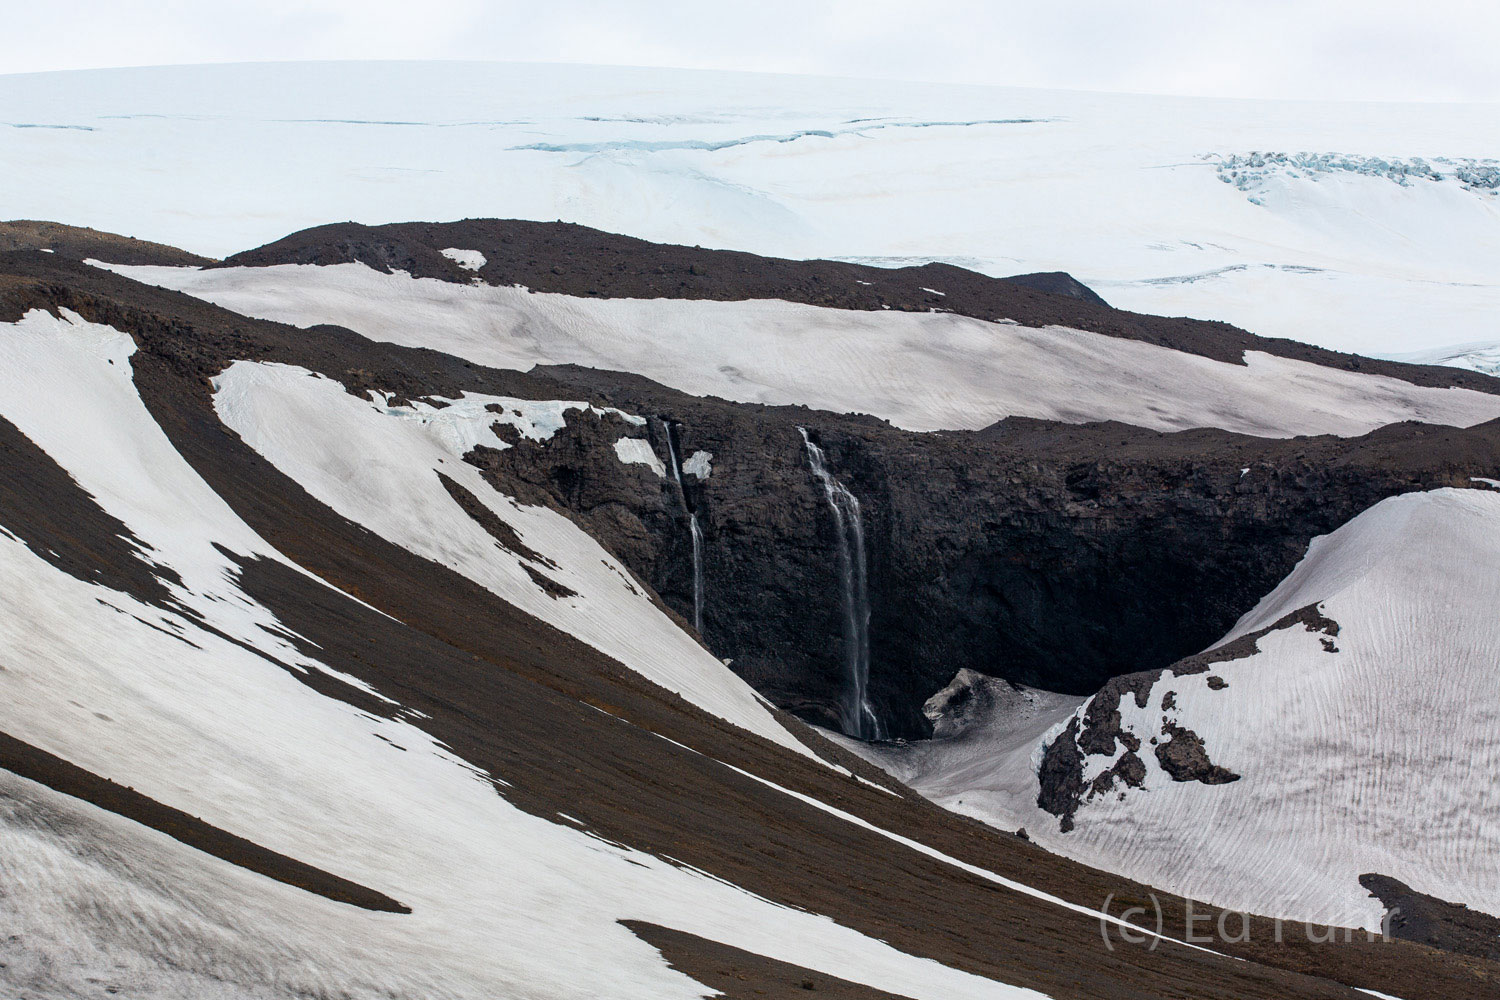 In the center of the island, the glacier Eiriksjokull rises above the cold lava and desolation.